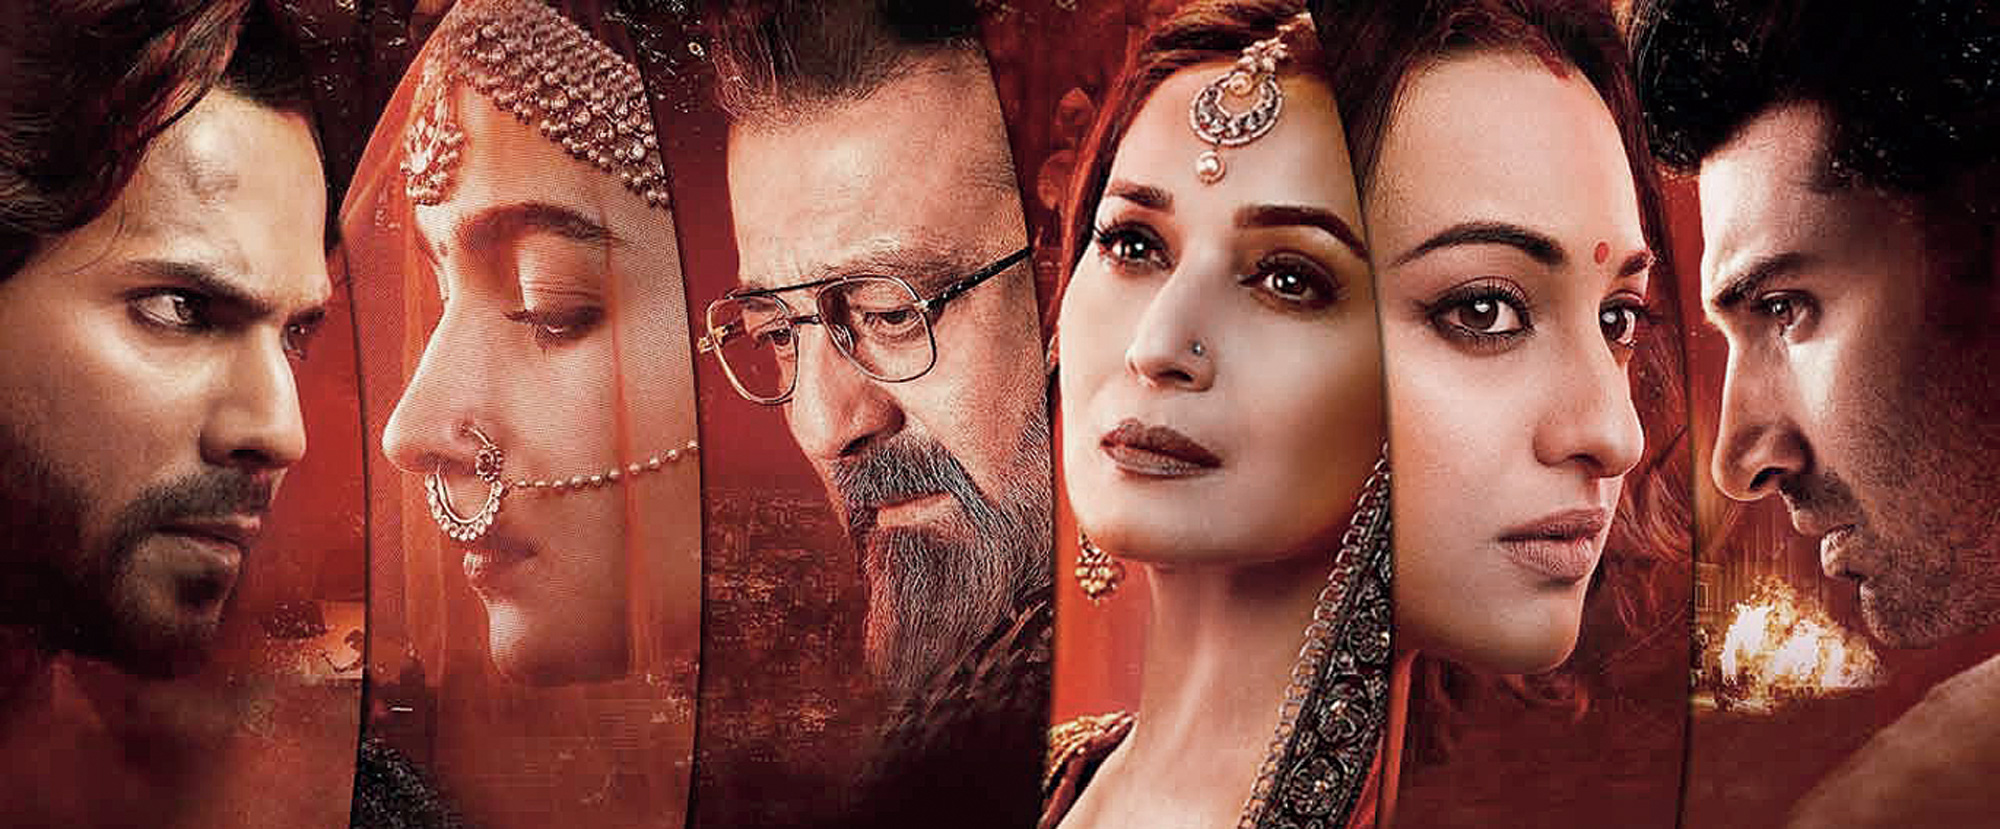 Kalank sacrifices story and soul at the altar of spectacle